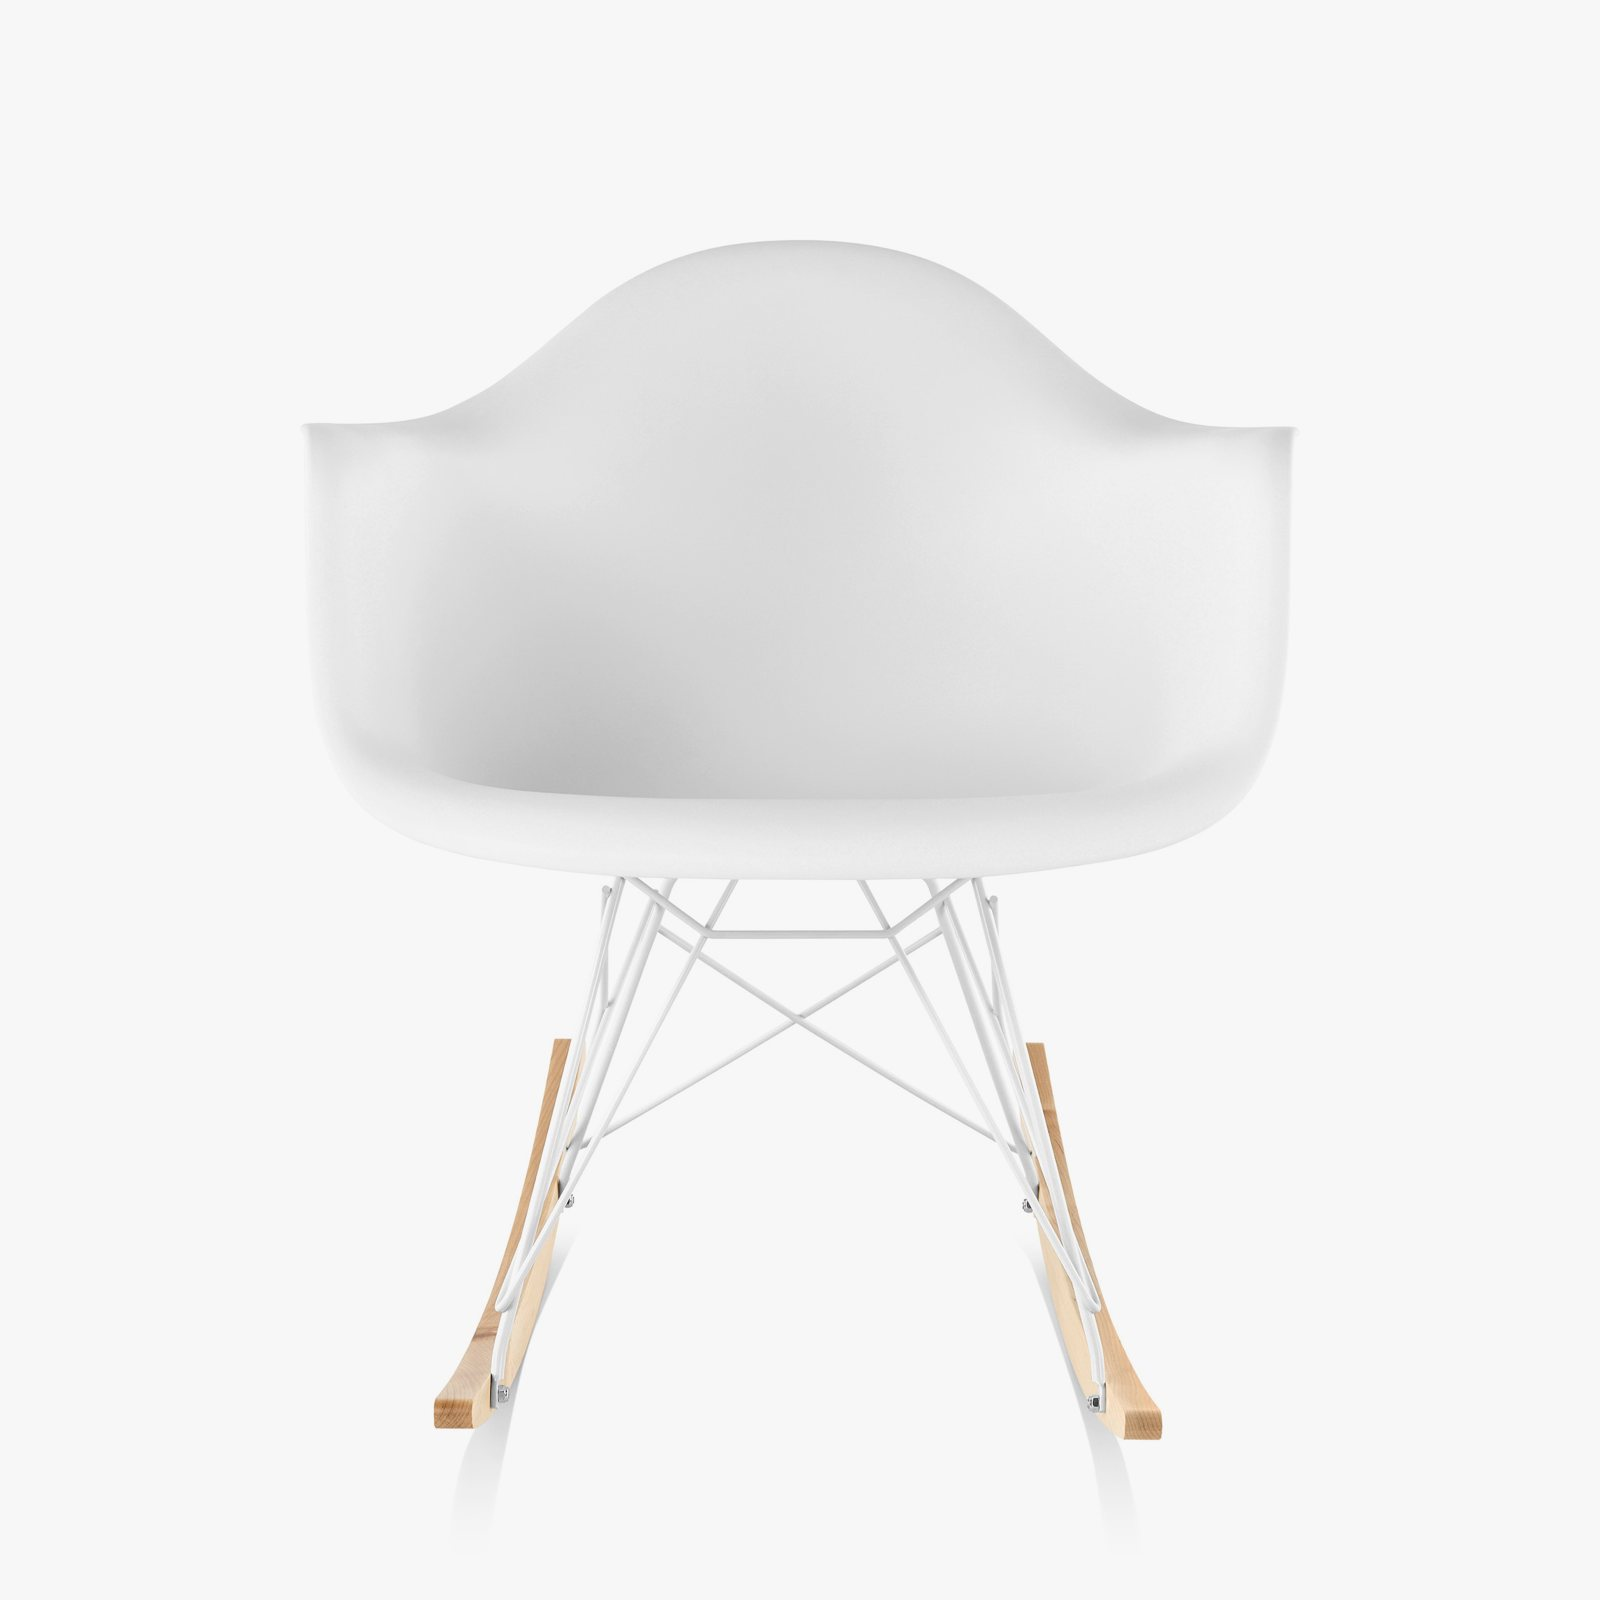 Eames Molded Plastic Armchair Rocker Base By Charles Ray Eames